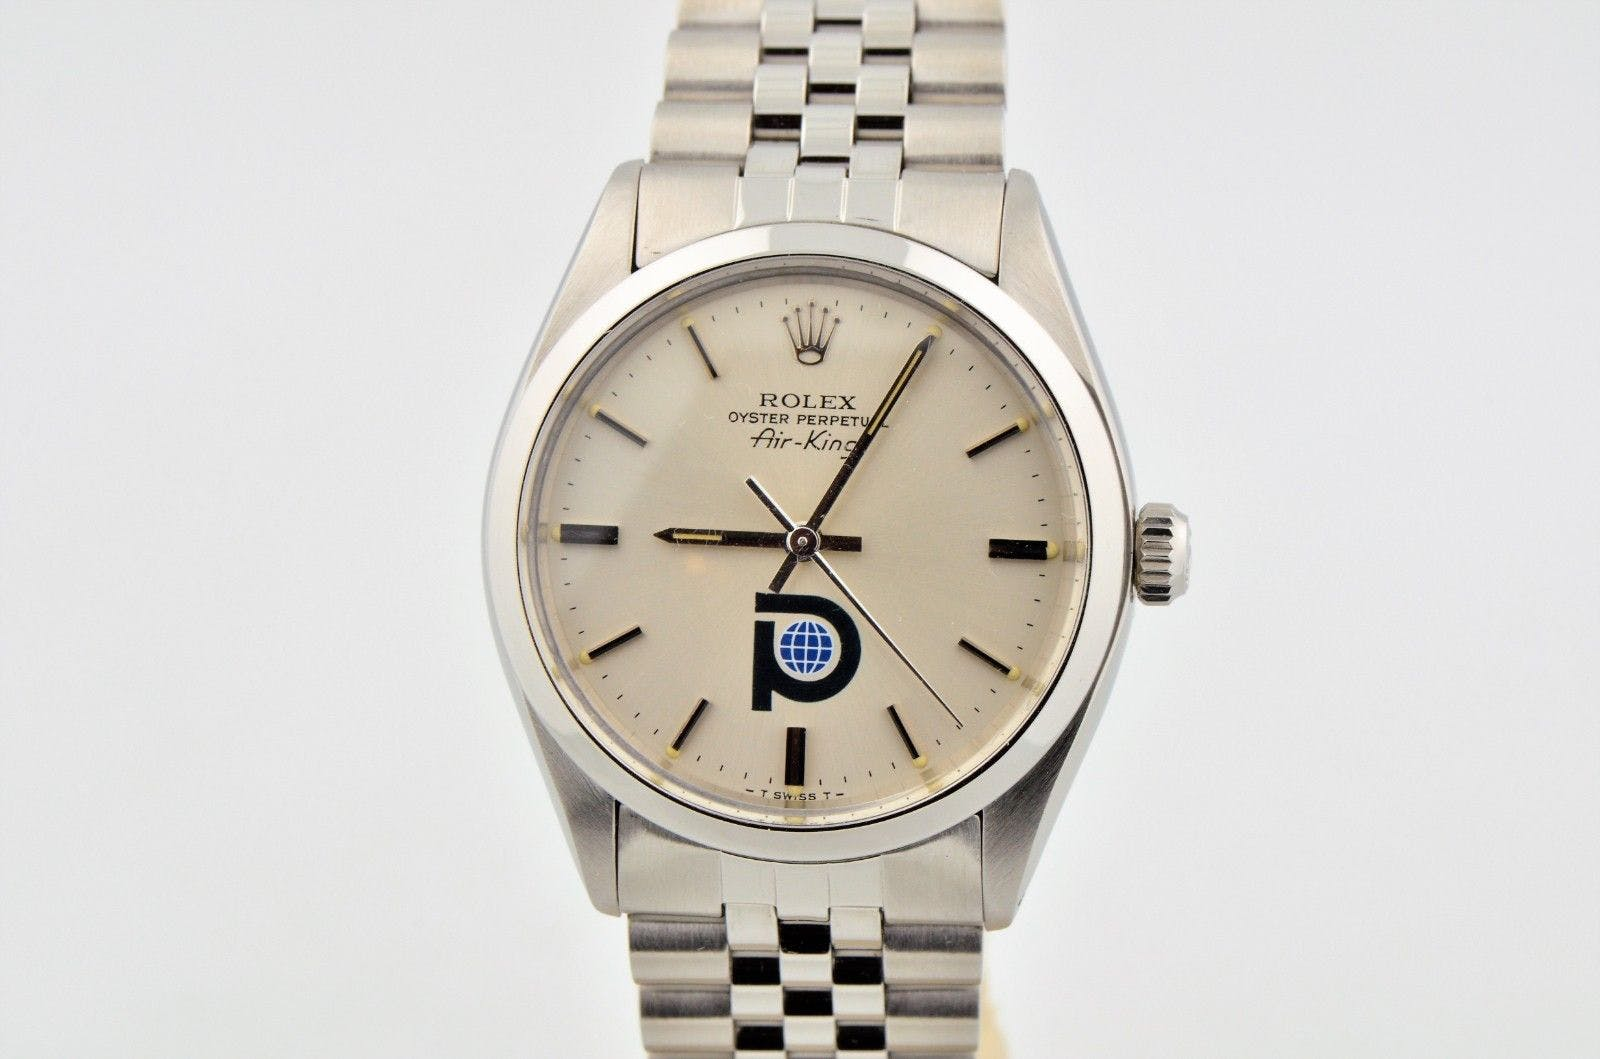 Rolex Oyster Perpetual Air-King Pool Intairdril